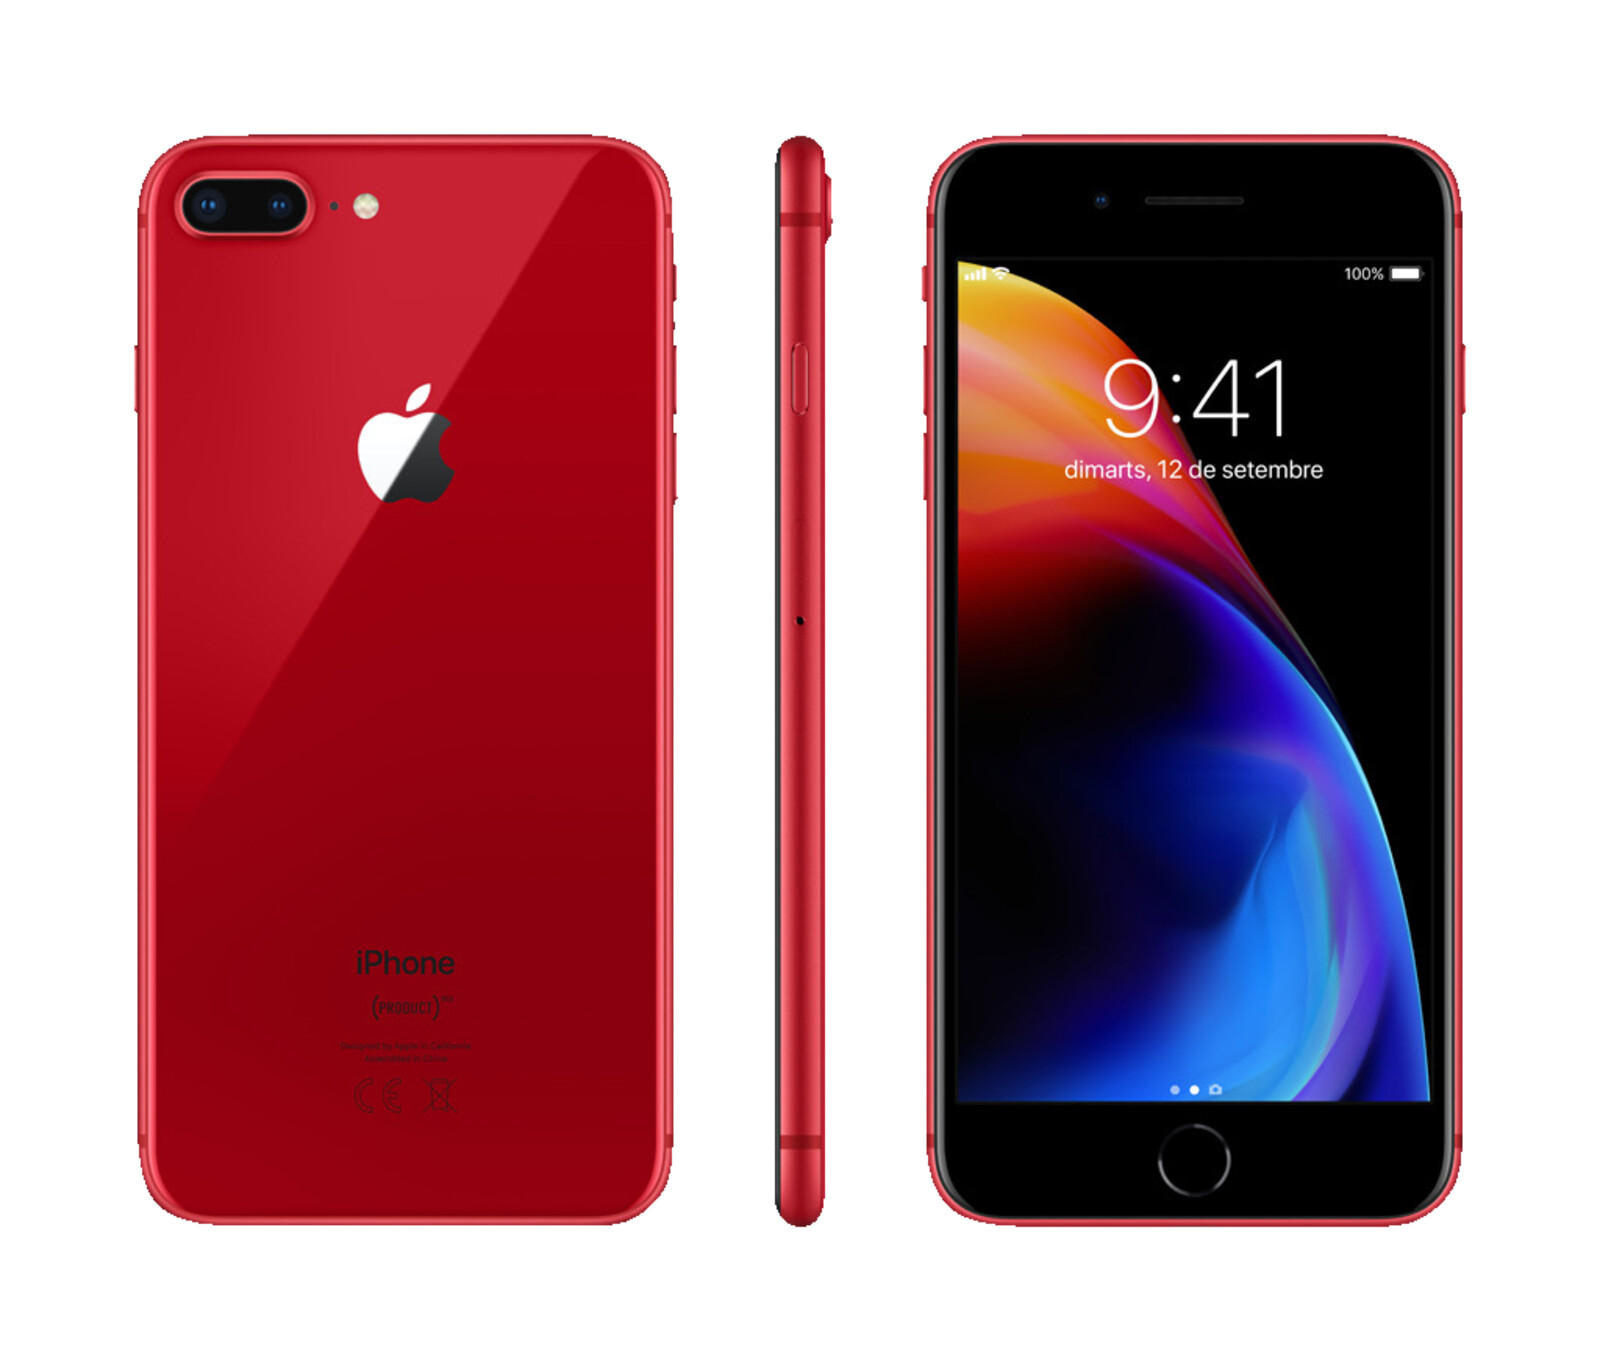 apple iphone 8 plus red smartphone 64 gb rot ebay. Black Bedroom Furniture Sets. Home Design Ideas